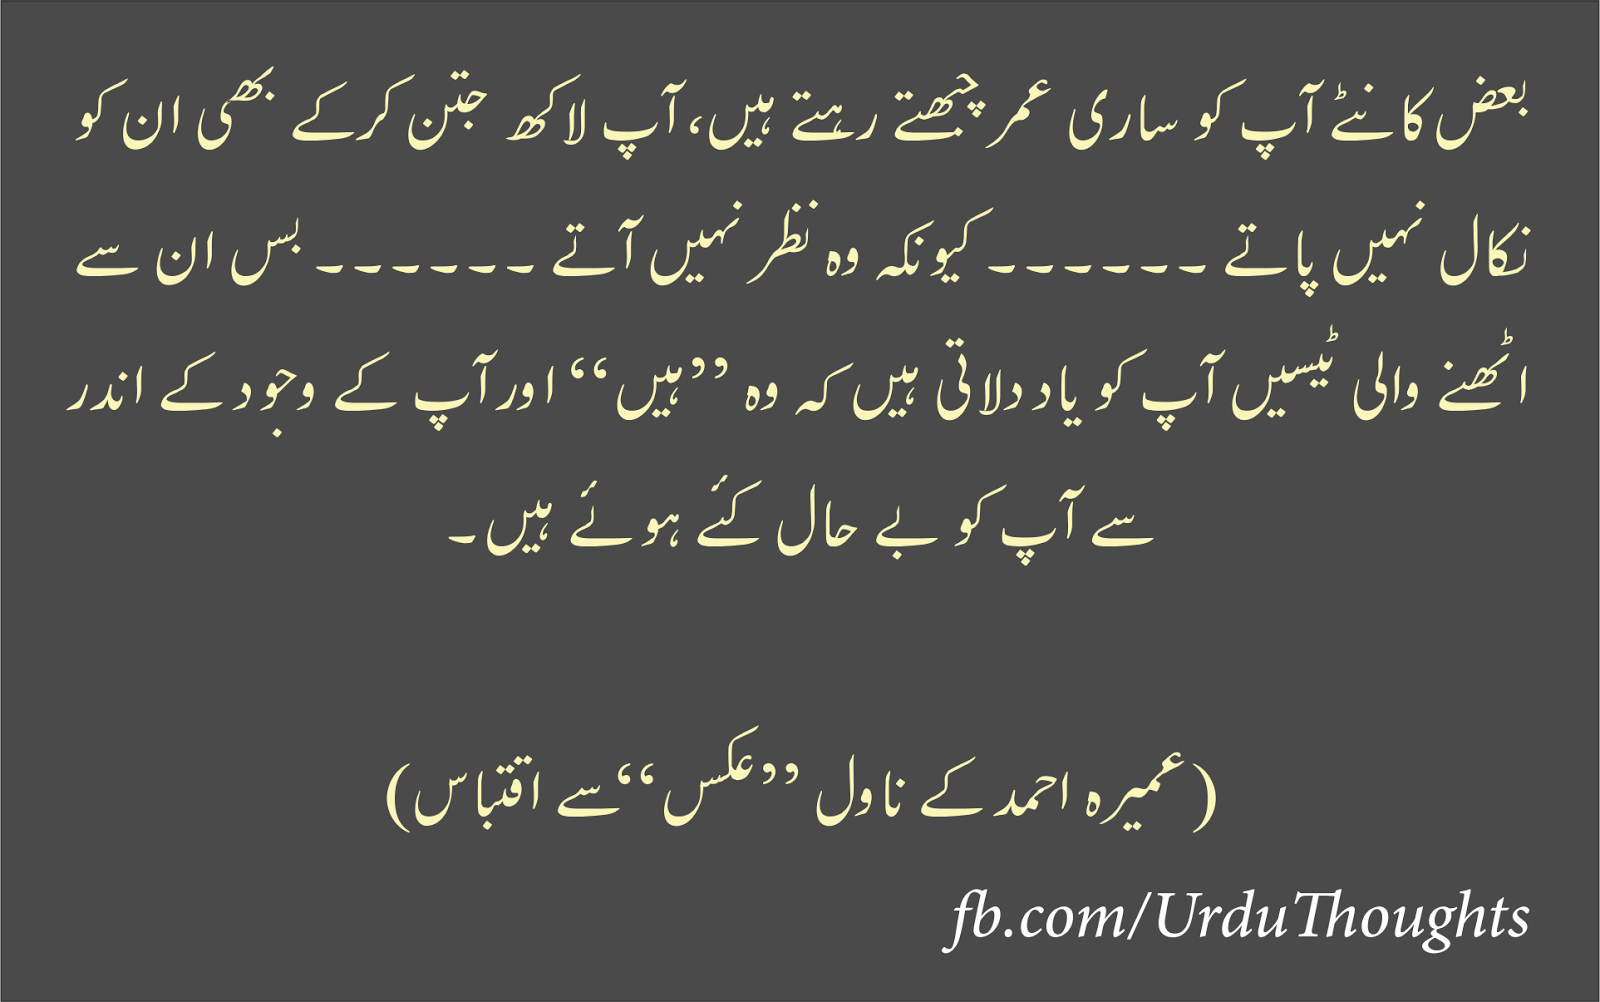 9 Beautiful Quotes On Zindagi in Urdu Images - Urdu ...